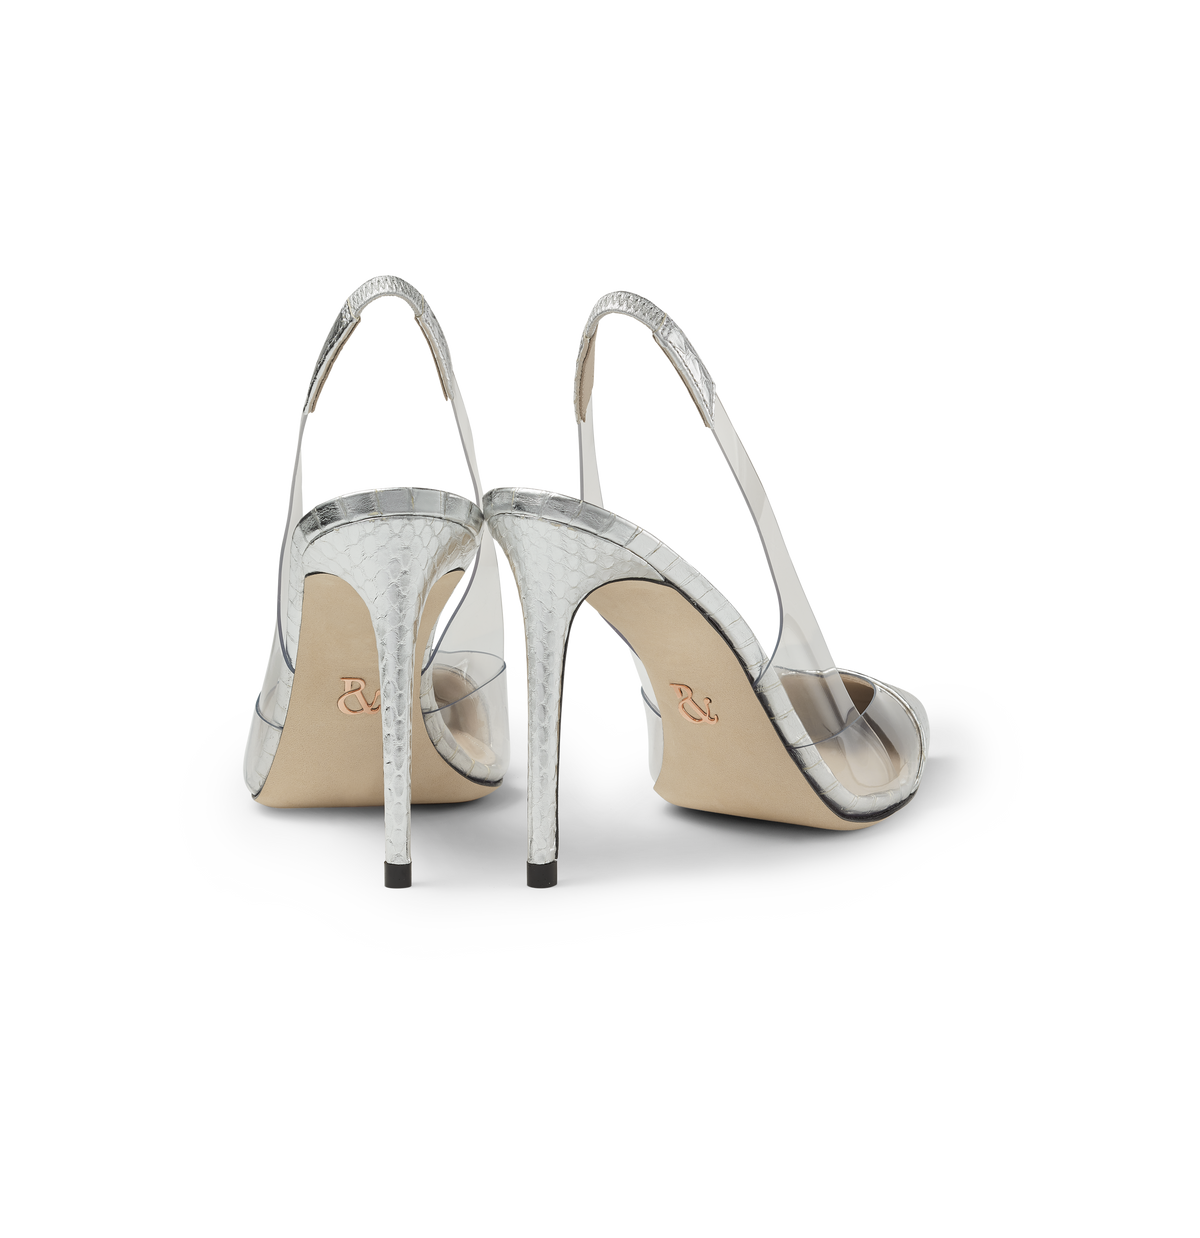 Silver Elaphe and PVC Slingback Pumps